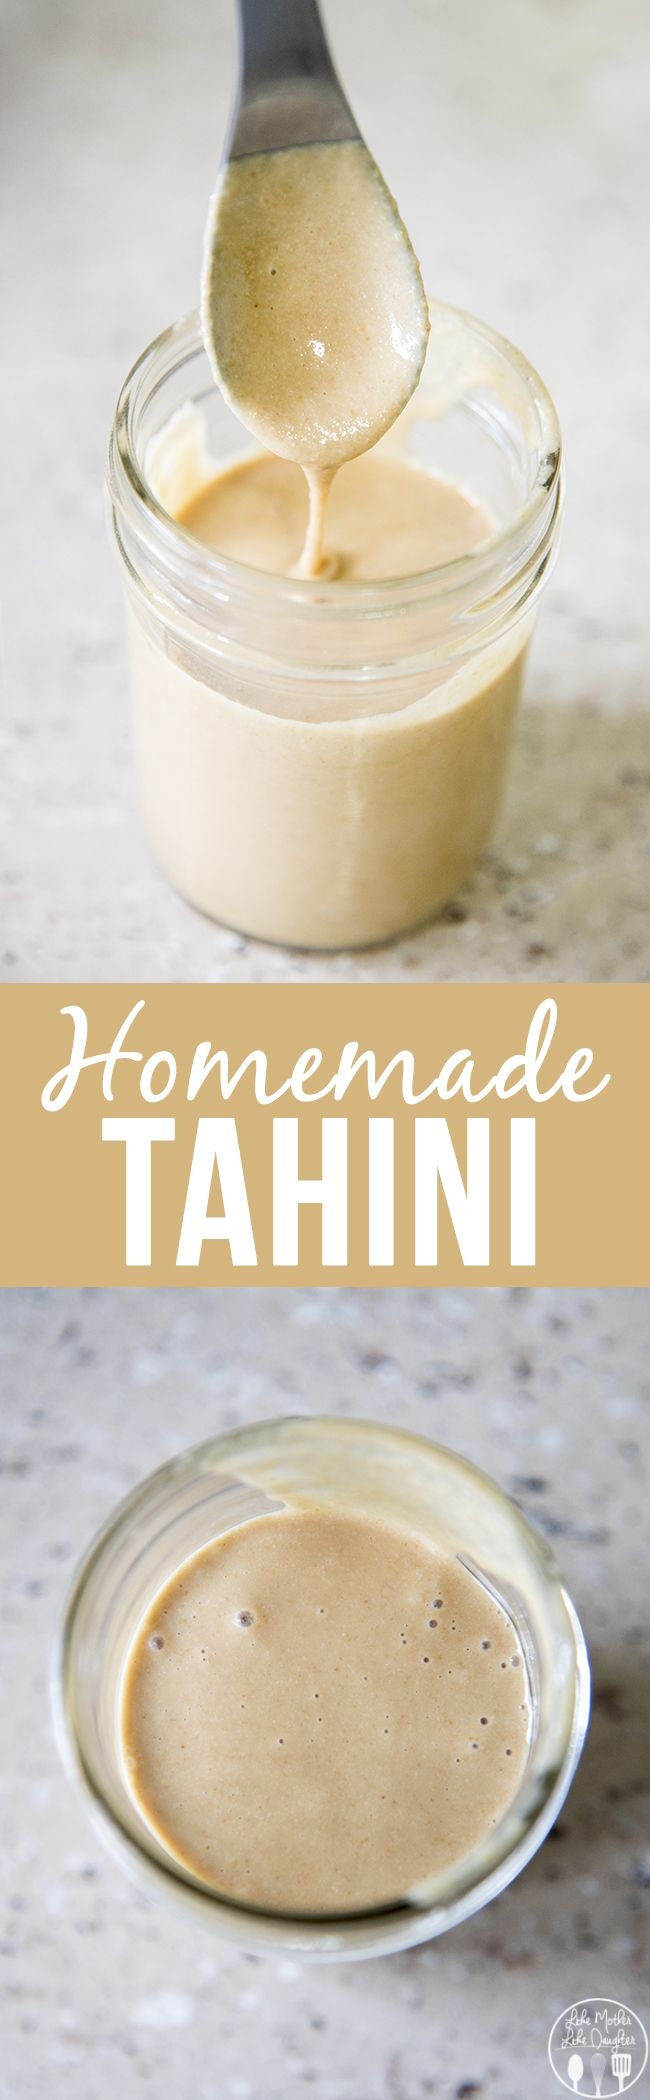 Homemade Tahii. Click on link for recipe and tutorial. http://lmld.org/2015/07/13/homemade-tahini/